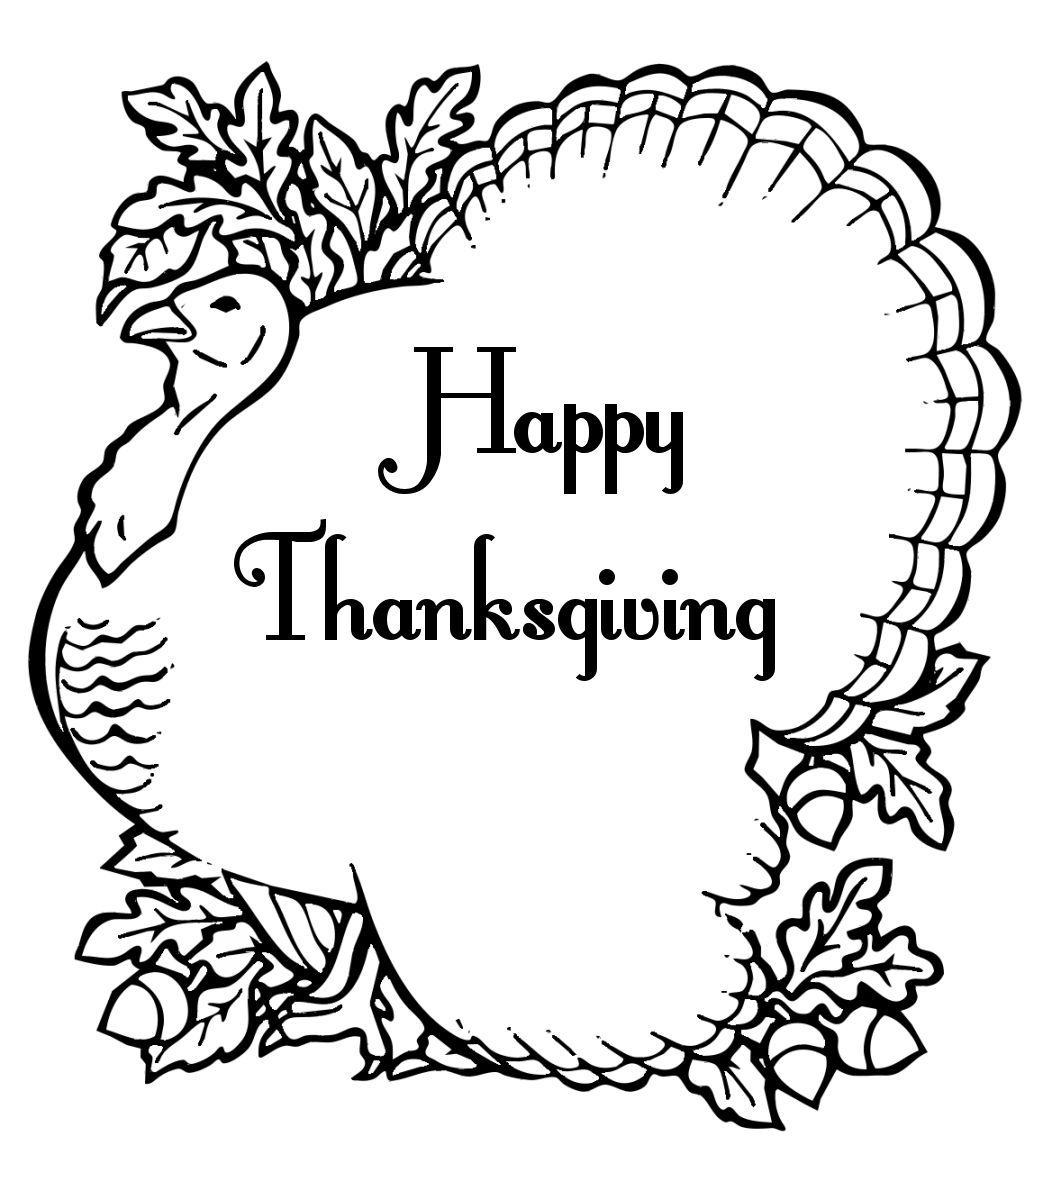 Thanksgiving Coloring Pages 2 | Coloring Pages To Print